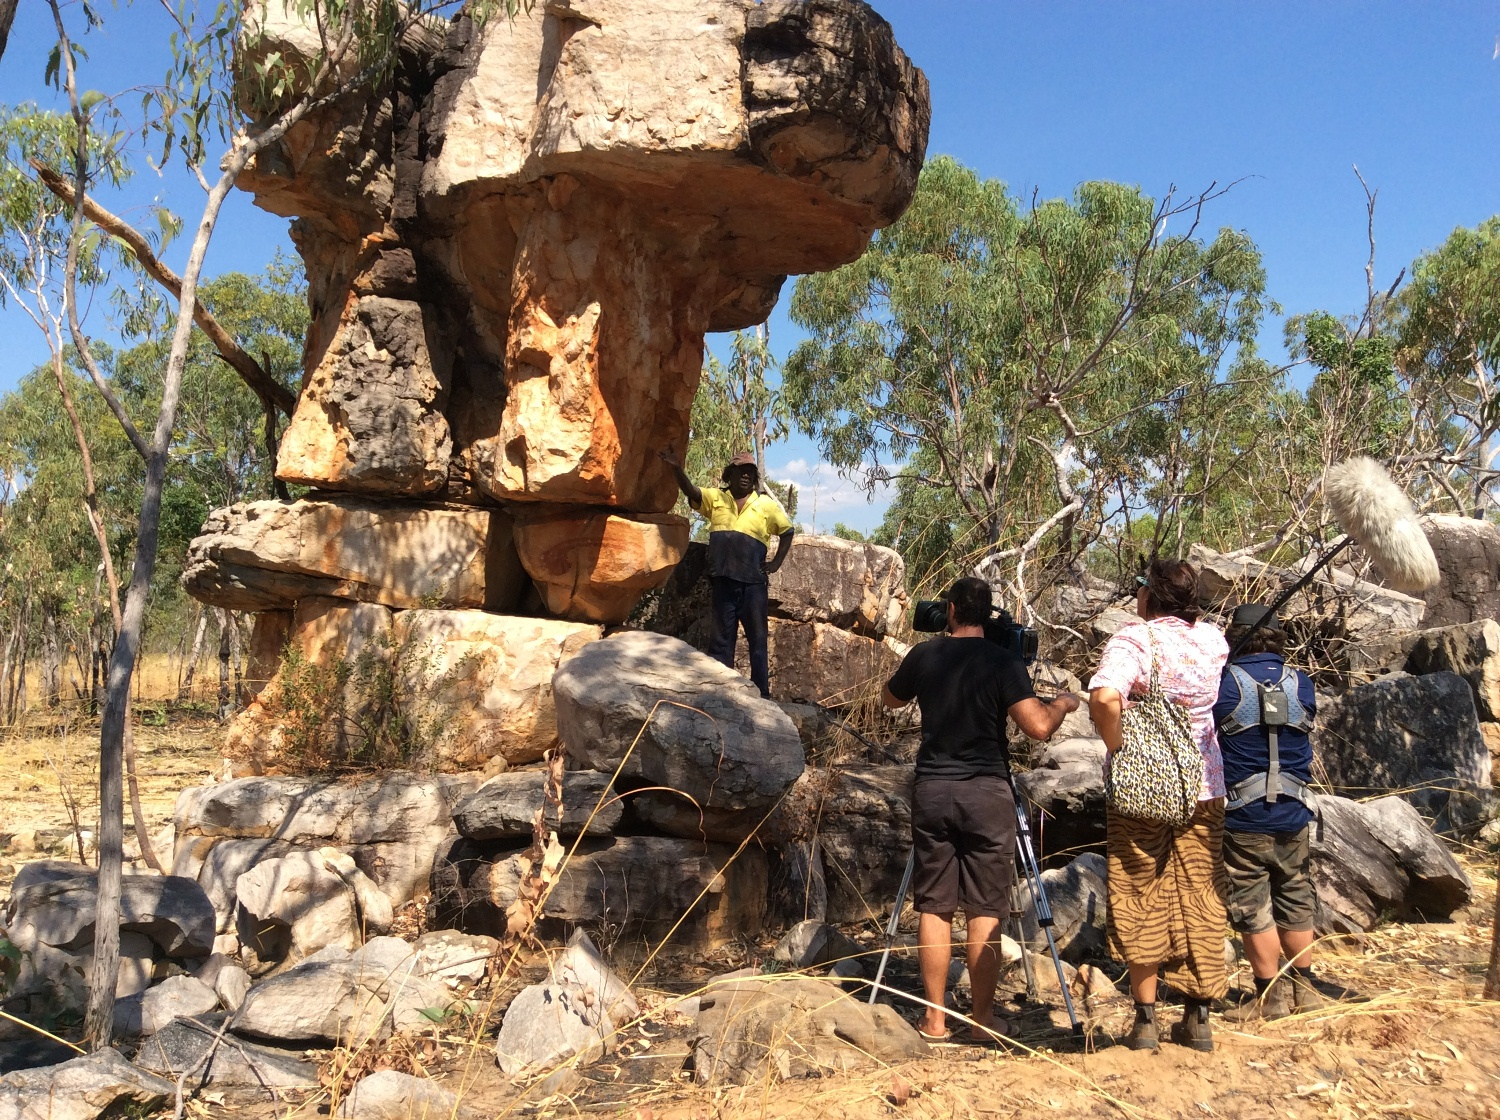 Dennis Bundamurra explaining the shooting star rock art site while being recorded by the ICS crew (Camera: Jason Thomas, Sound: Owen Hughes & Director: Jub Clerc) © AGWA 2015